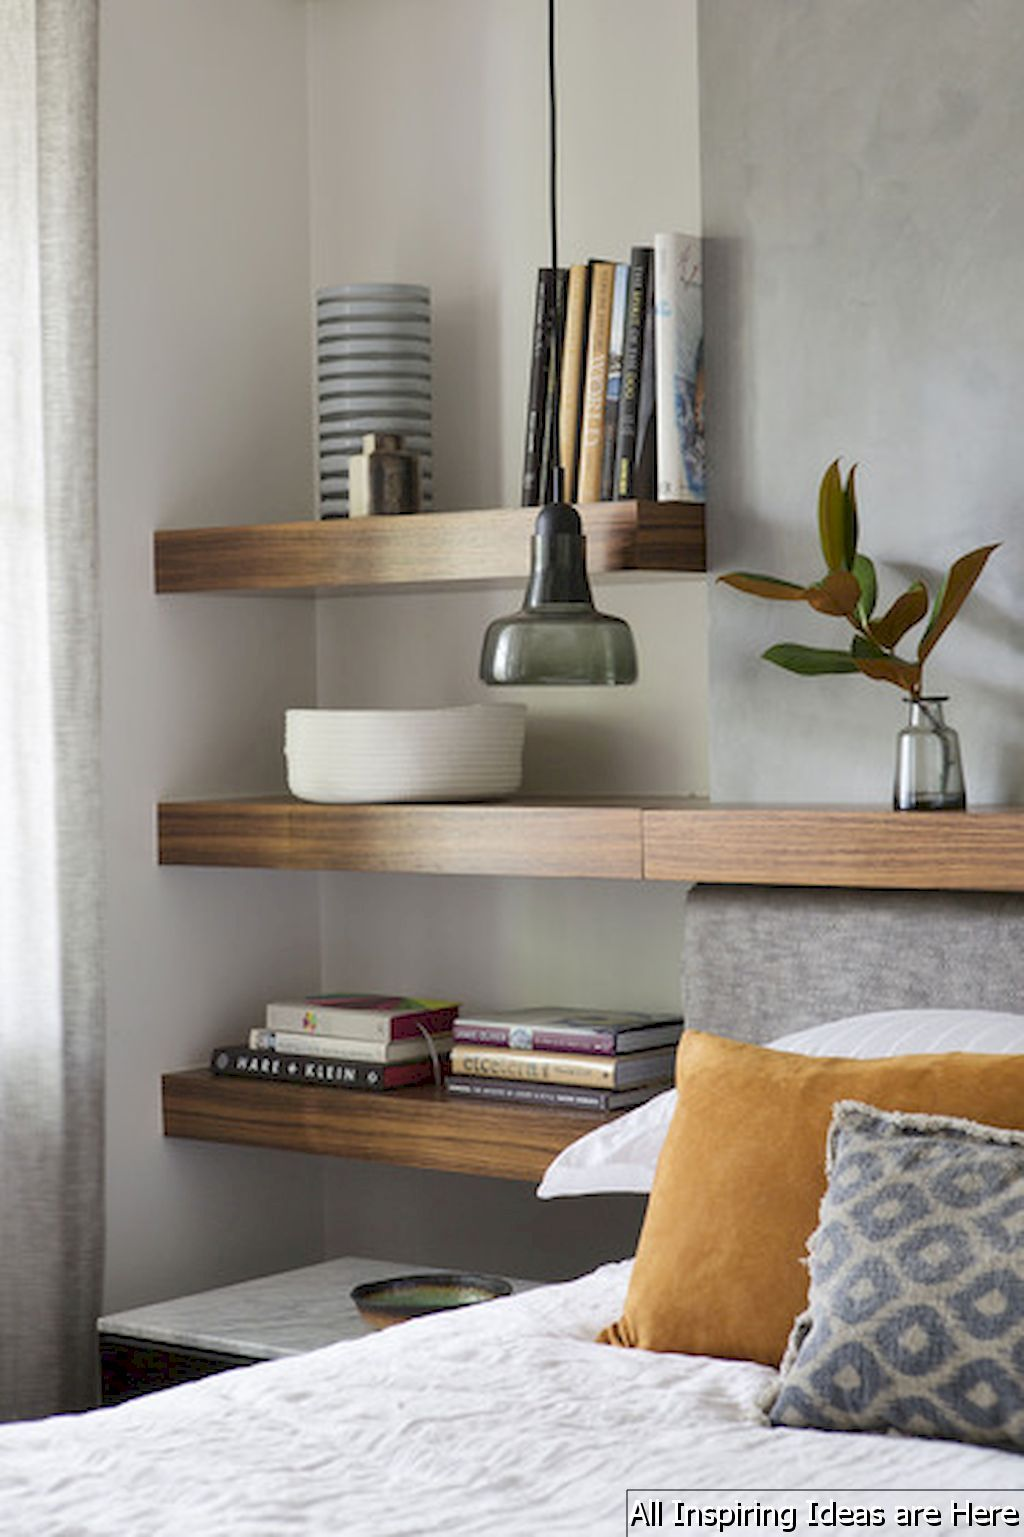 remarkable bedroom wall shelves ideas | 65 Simple Bedroom Shelves Design Ideas | Bedroom Design ...